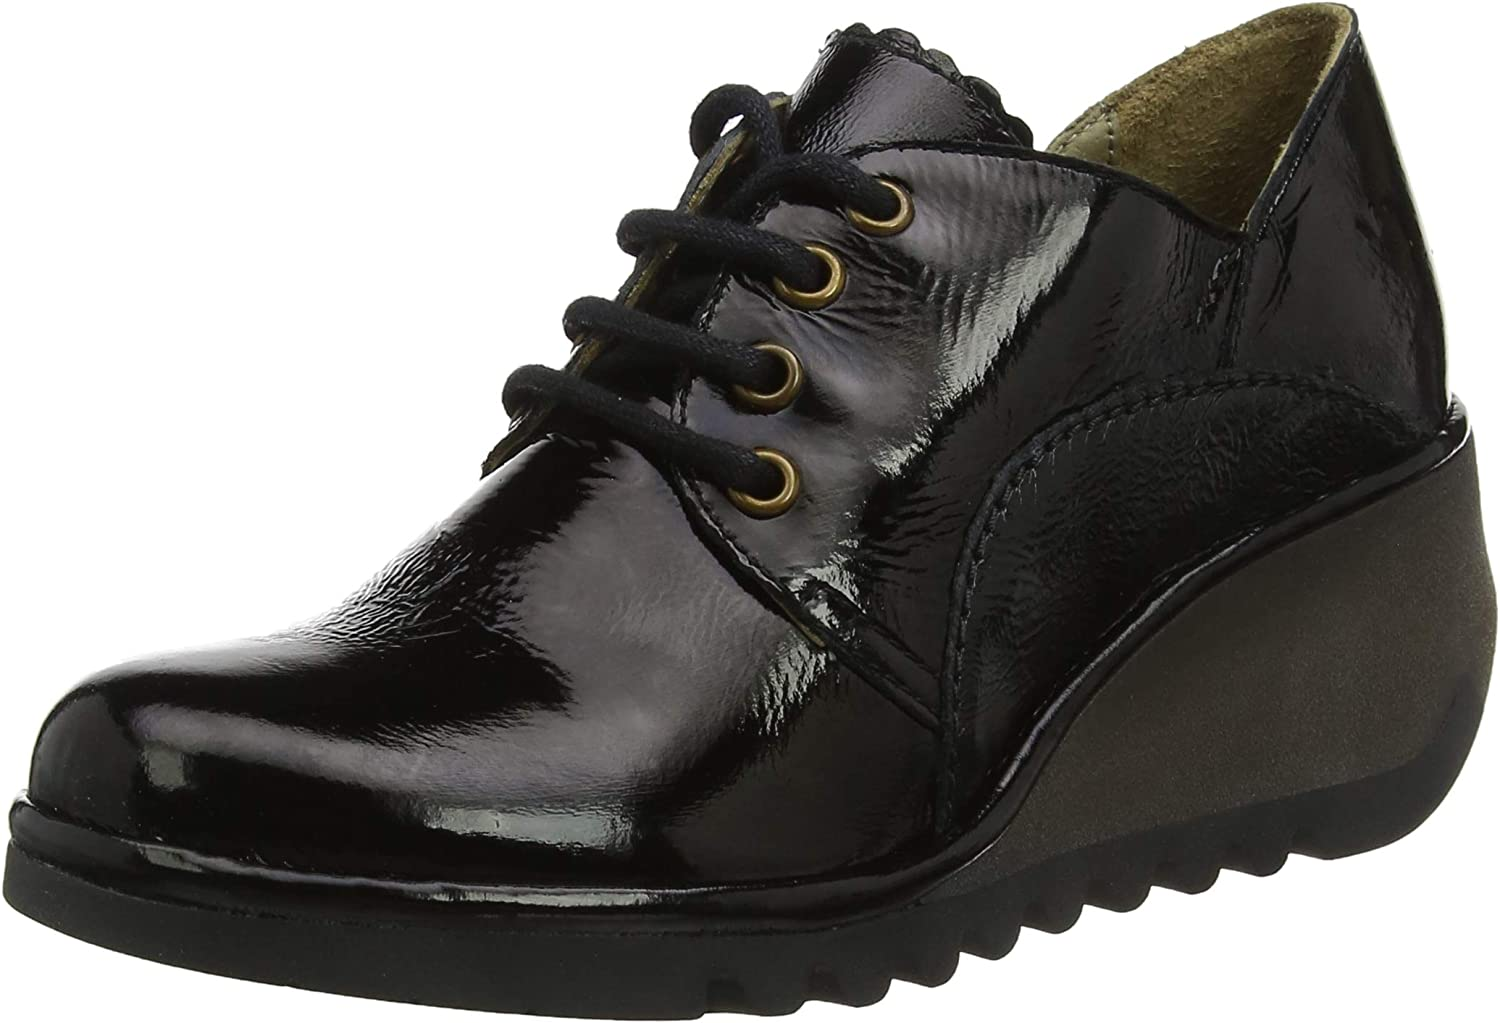 Fly London Womens Nedo087fly Brogues